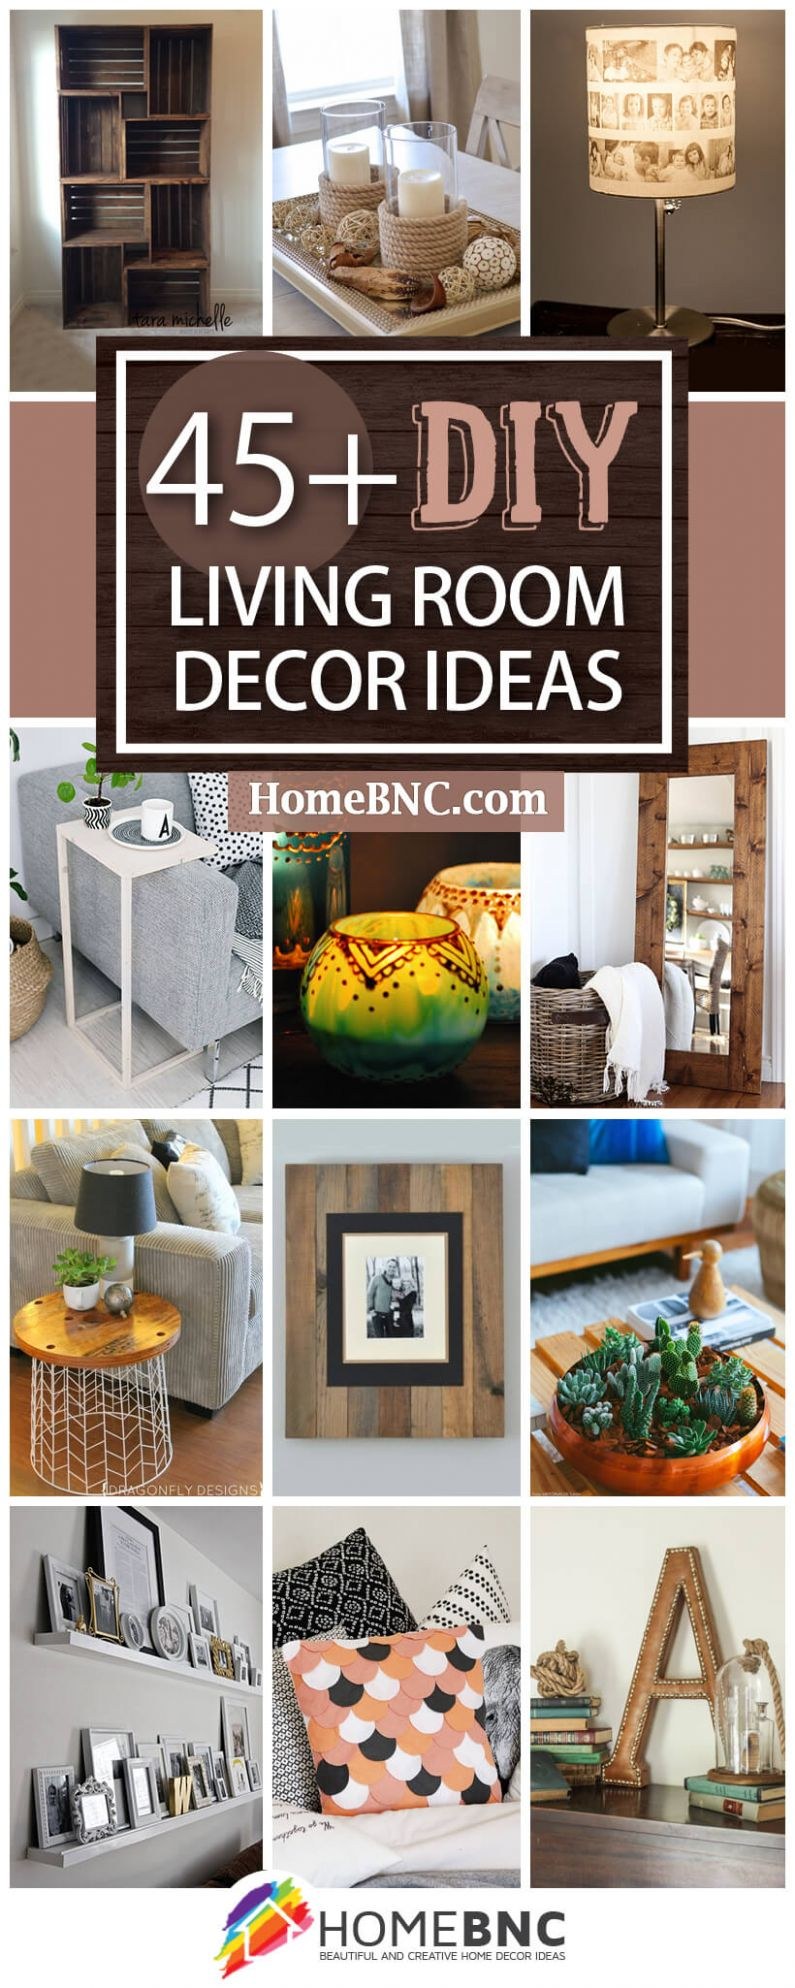 10+ Best DIY Living Room Decorating Ideas and Designs for 10 - diy home decor for beginners